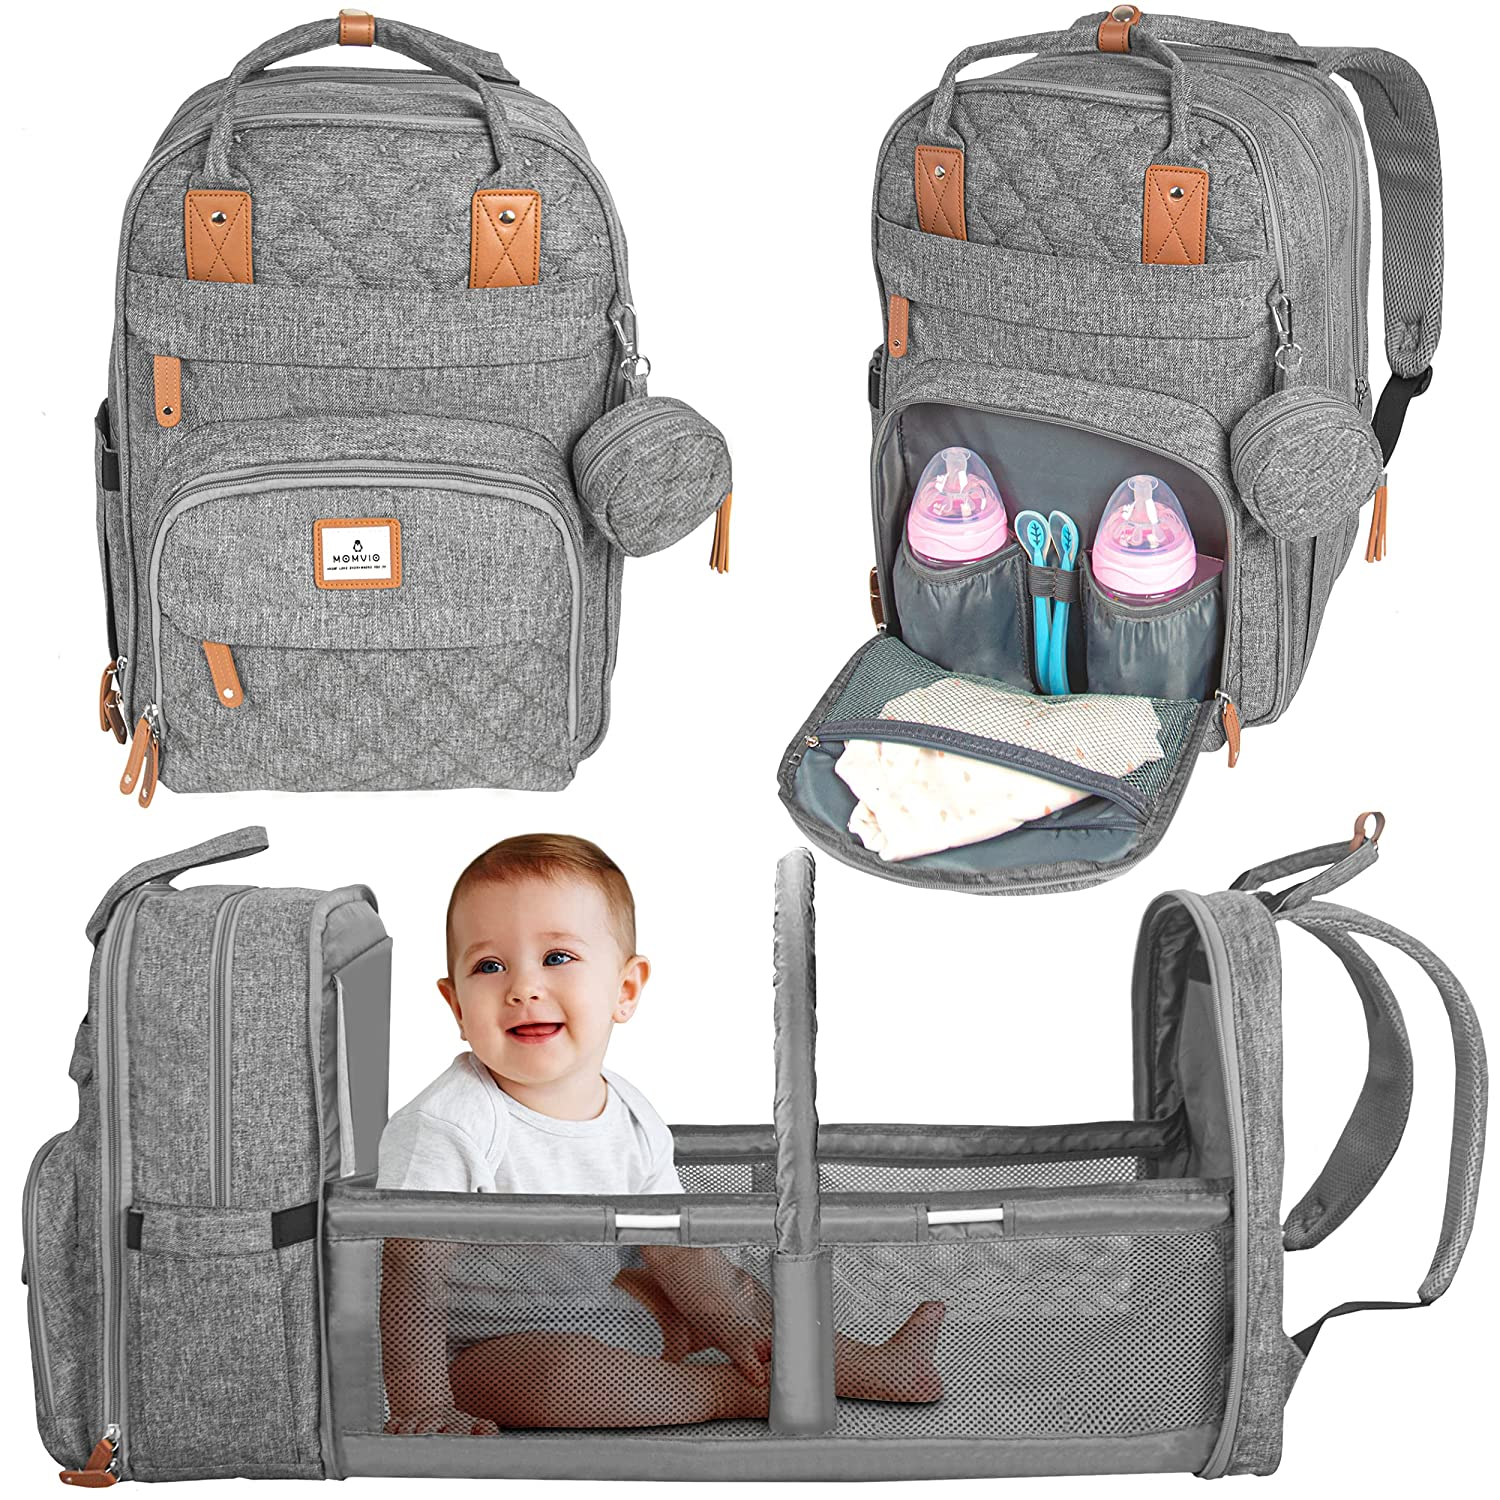 MOMVIO Diaper Bag with Changing Station - Large Capacity Foldable Diaper Backpack with Travel Bassinet for Baby - Multi-Functional Baby Diaper Bag Backpack with Changing Pad, Stroller Straps (Grey)